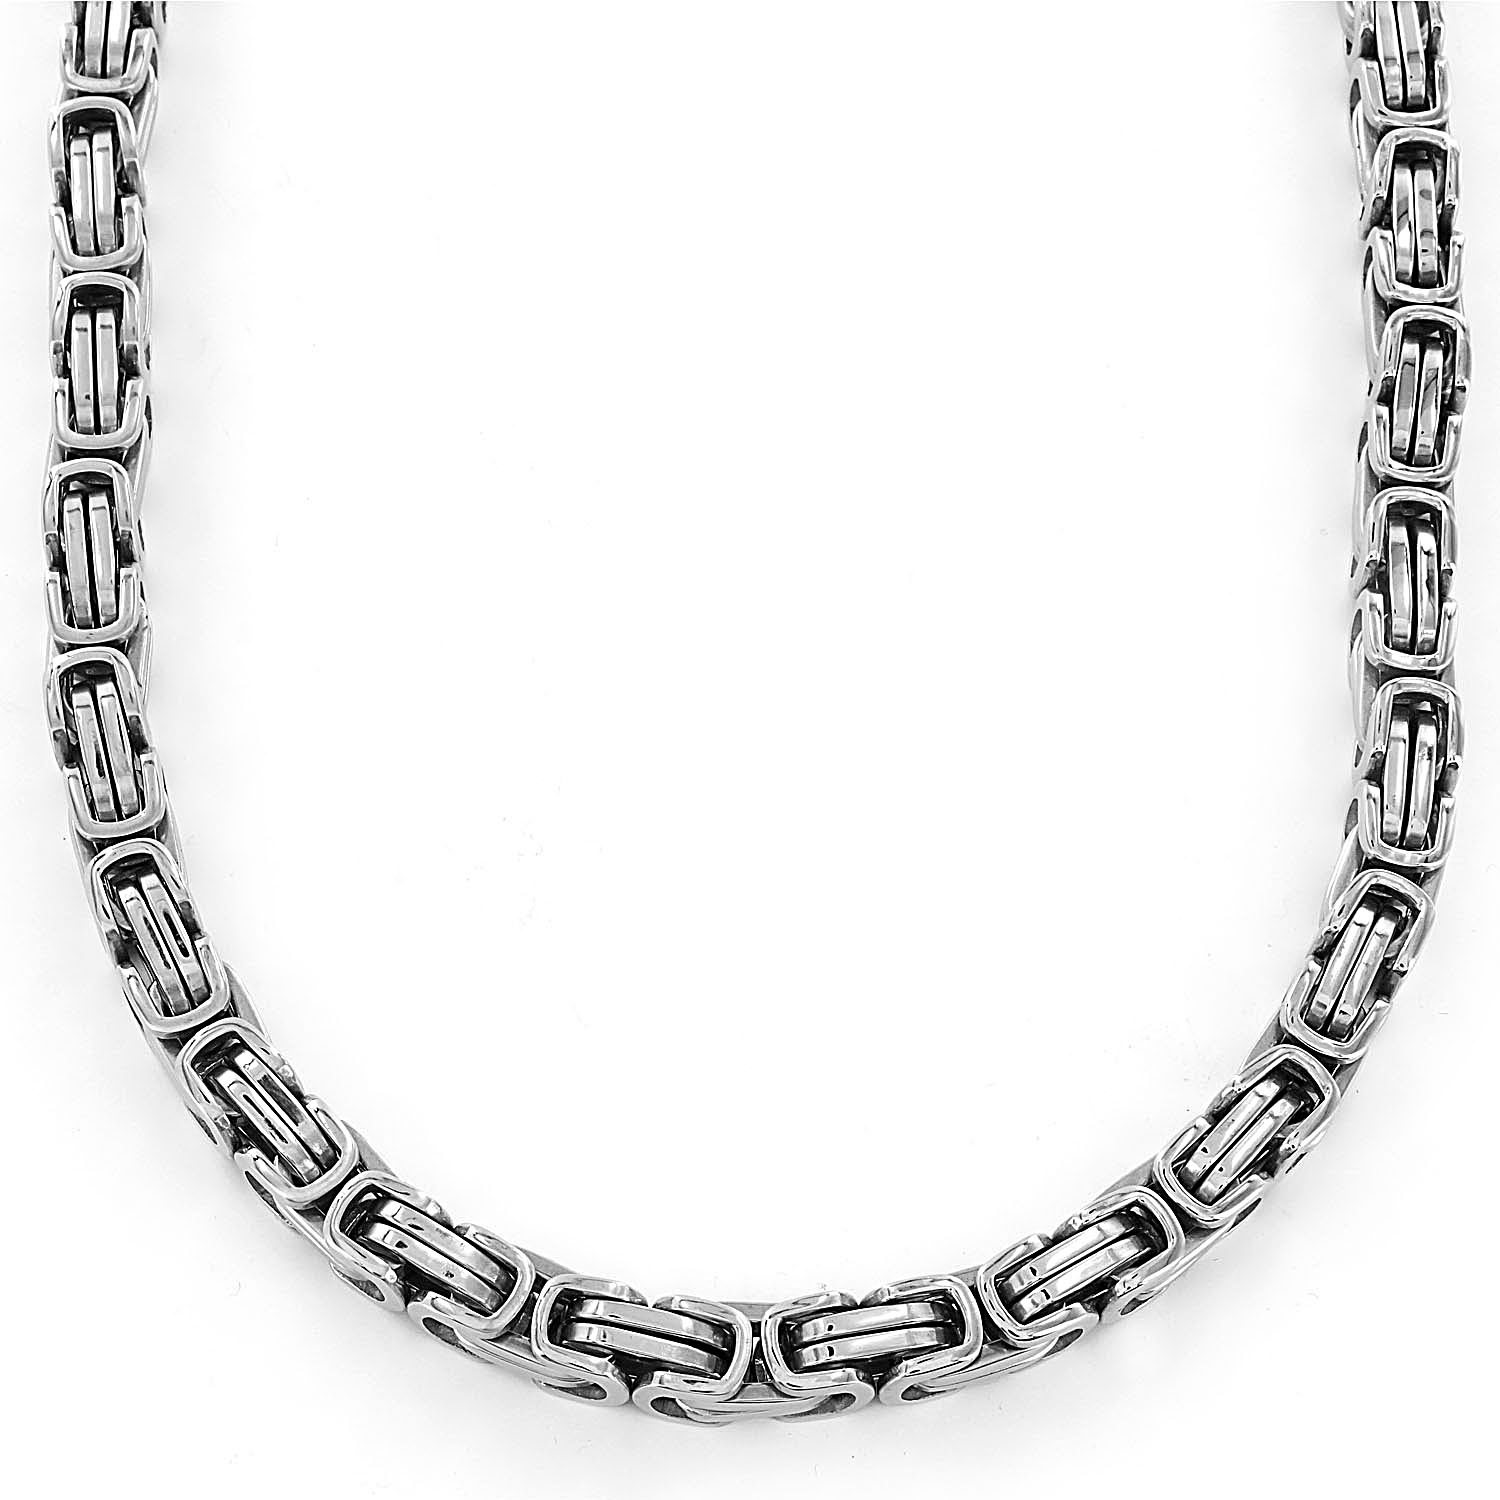 Stainless Steel Link Chain Necklace